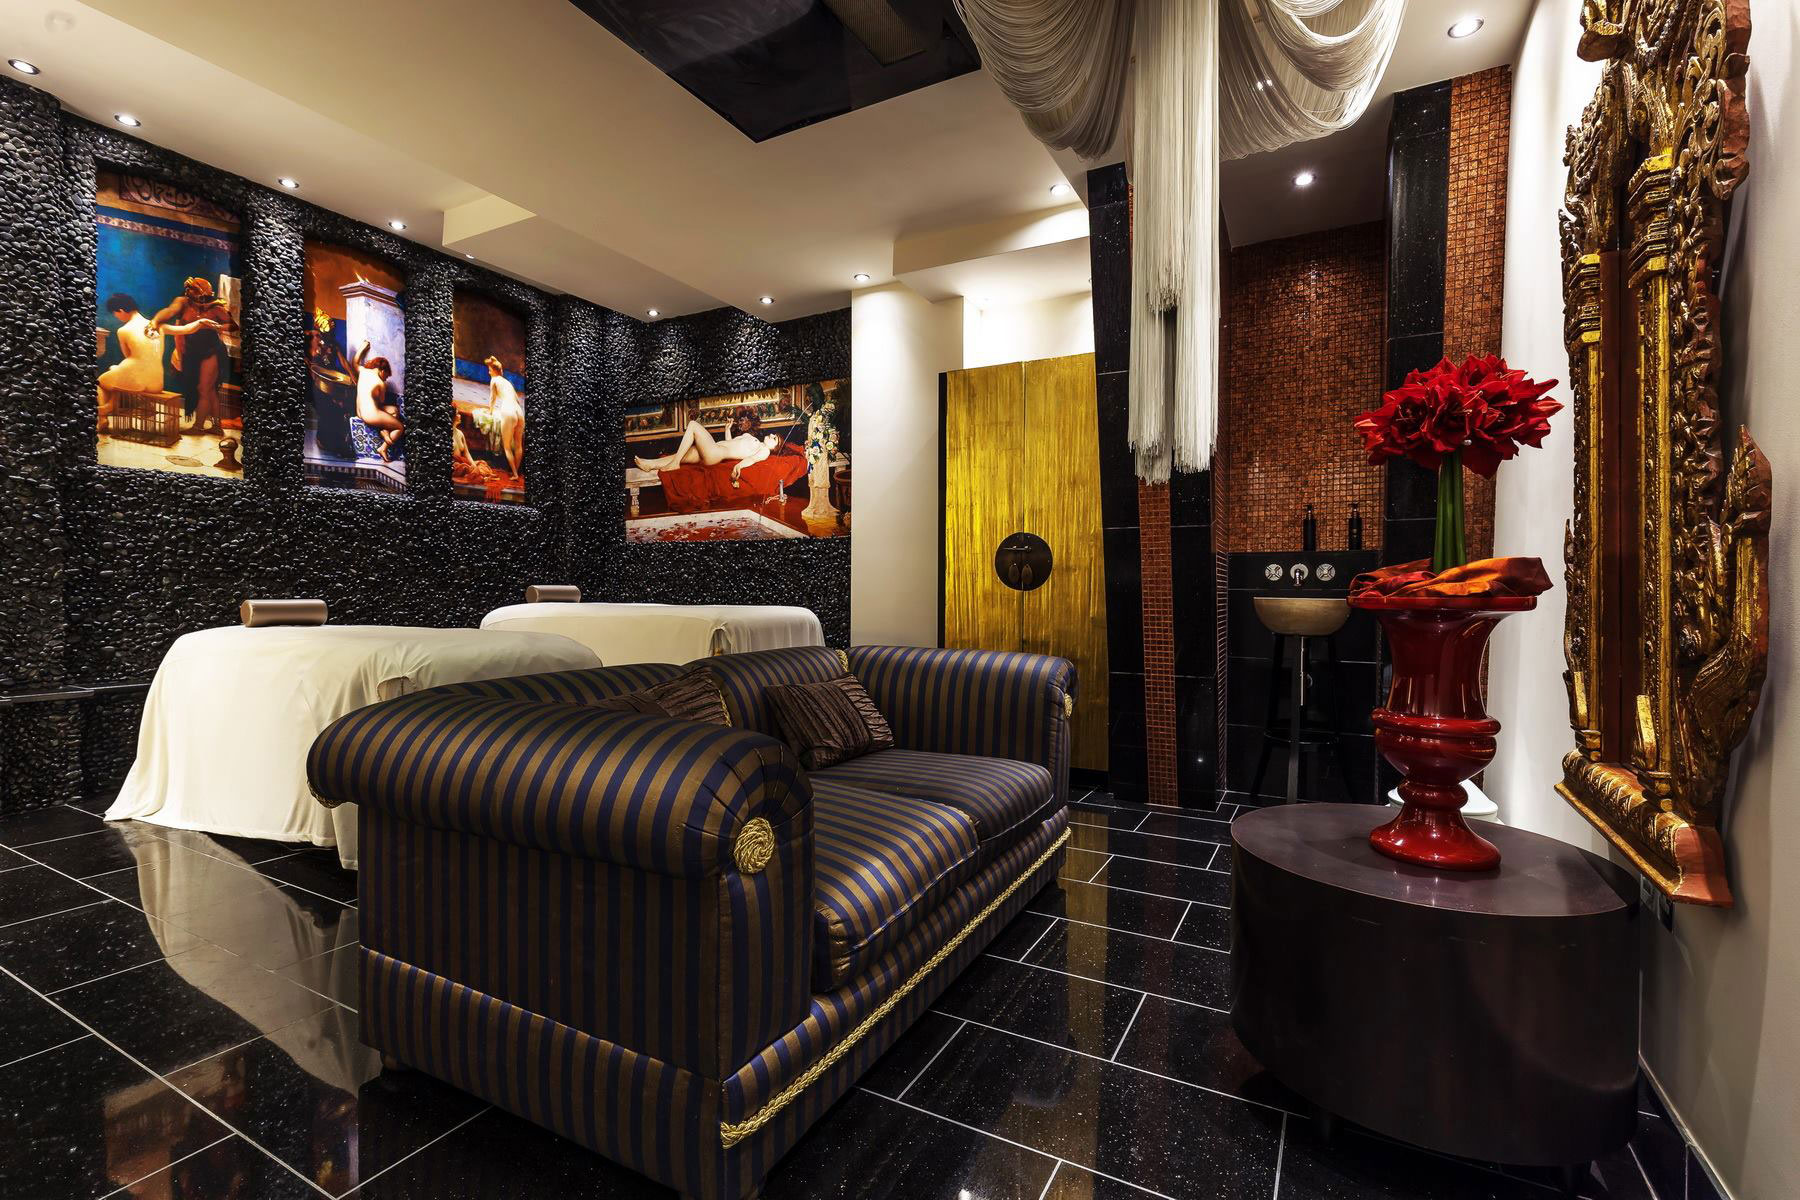 Thai Square Spa has established itself as a premium day spa since it opened its doors in the heart of Covent Garden during 2010